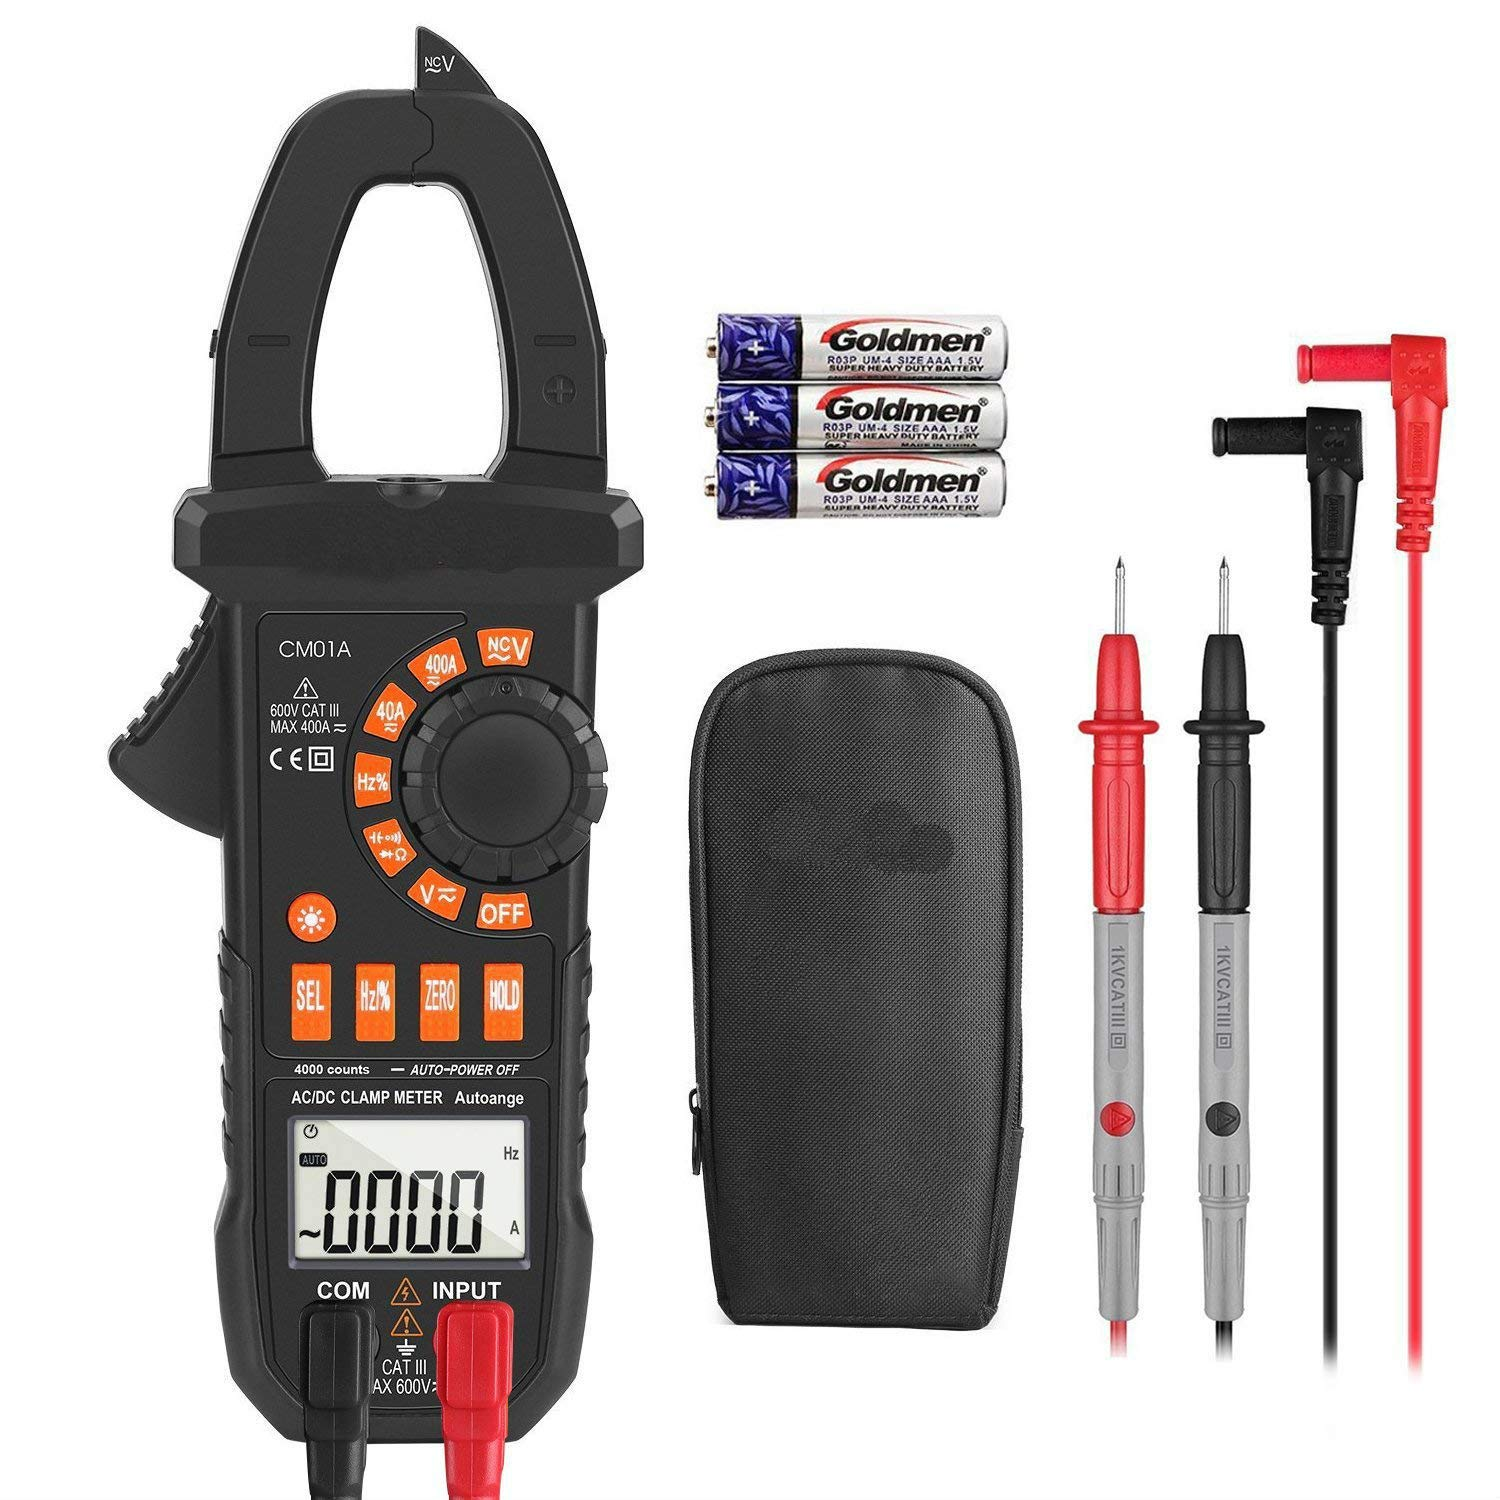 Clamp Meter Amp meter Digital Multimeter 4000 Counts with NCV Auto-Ranging Testing AC/DC Current&Voltage, Continuity Electrical Tester, Diode, Resistance, Capacitance, Frequency- Tacklife CM01A by TACKLIFE